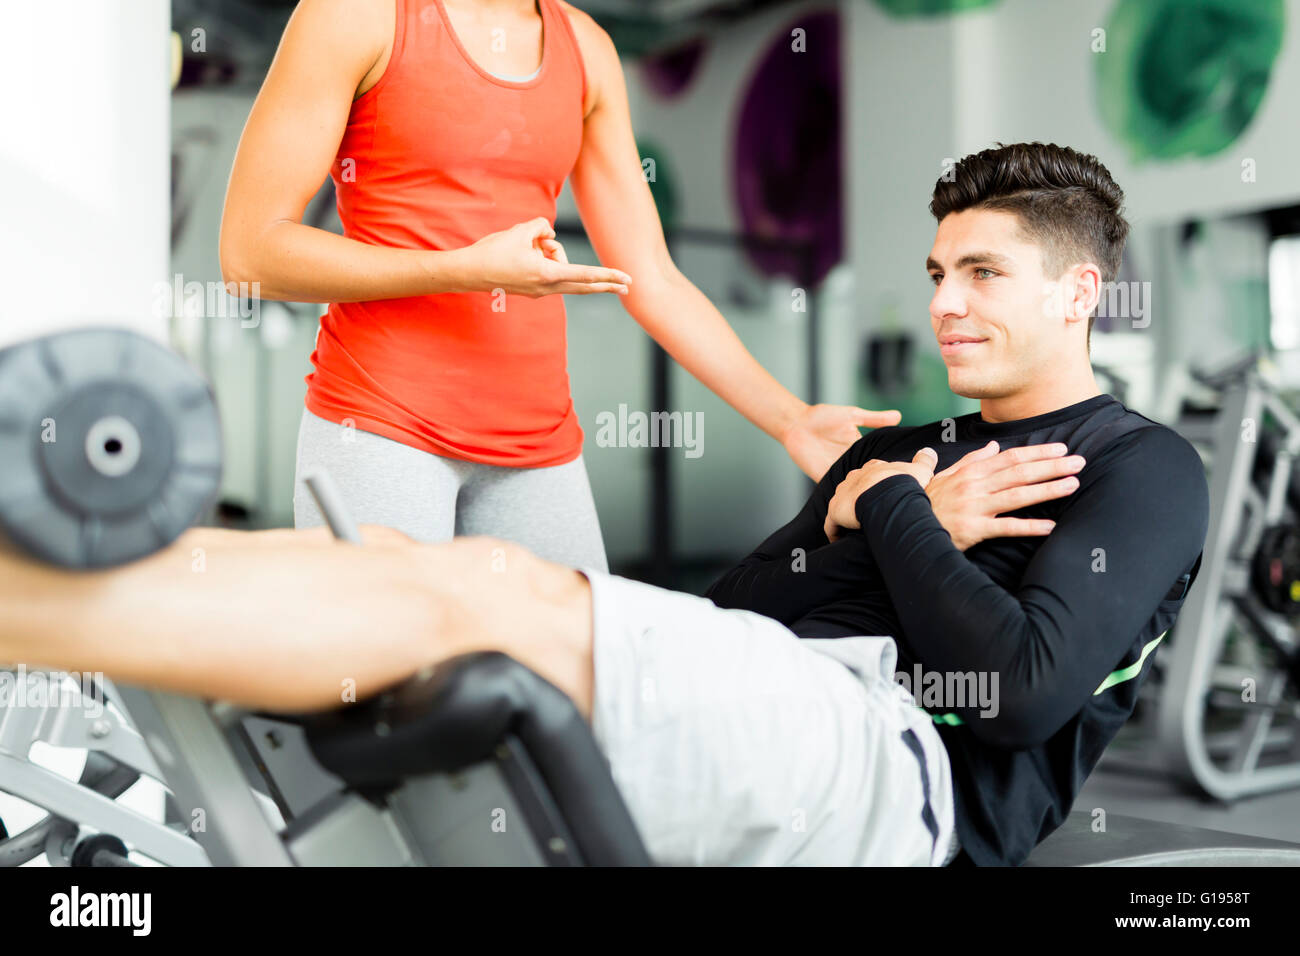 Beautiful young woman instructing a young man in the gym and overlooking his workout - Stock Image